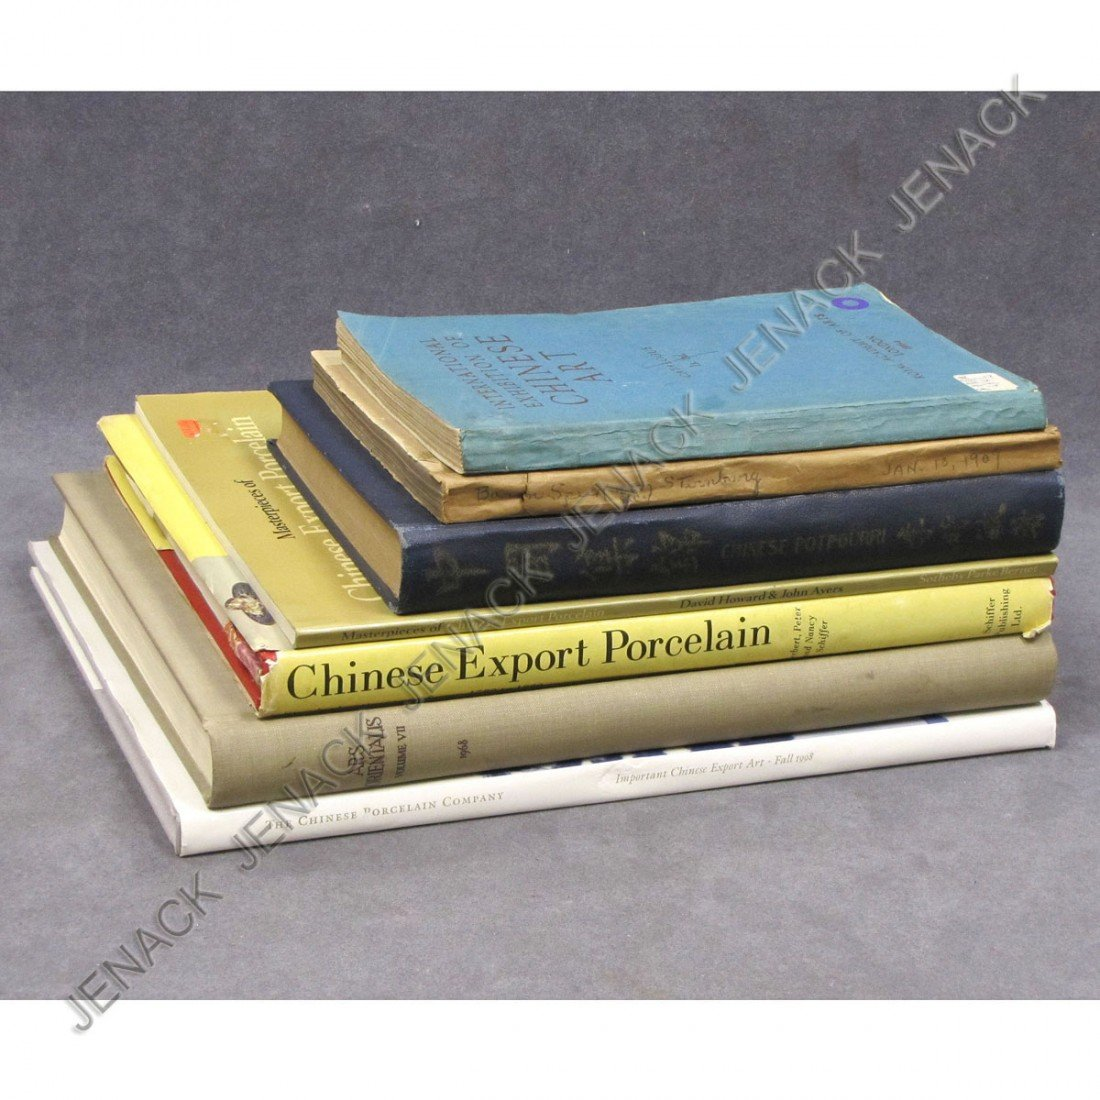 8: LOT (7) ASSORTED ART REFERENCE BOOKS